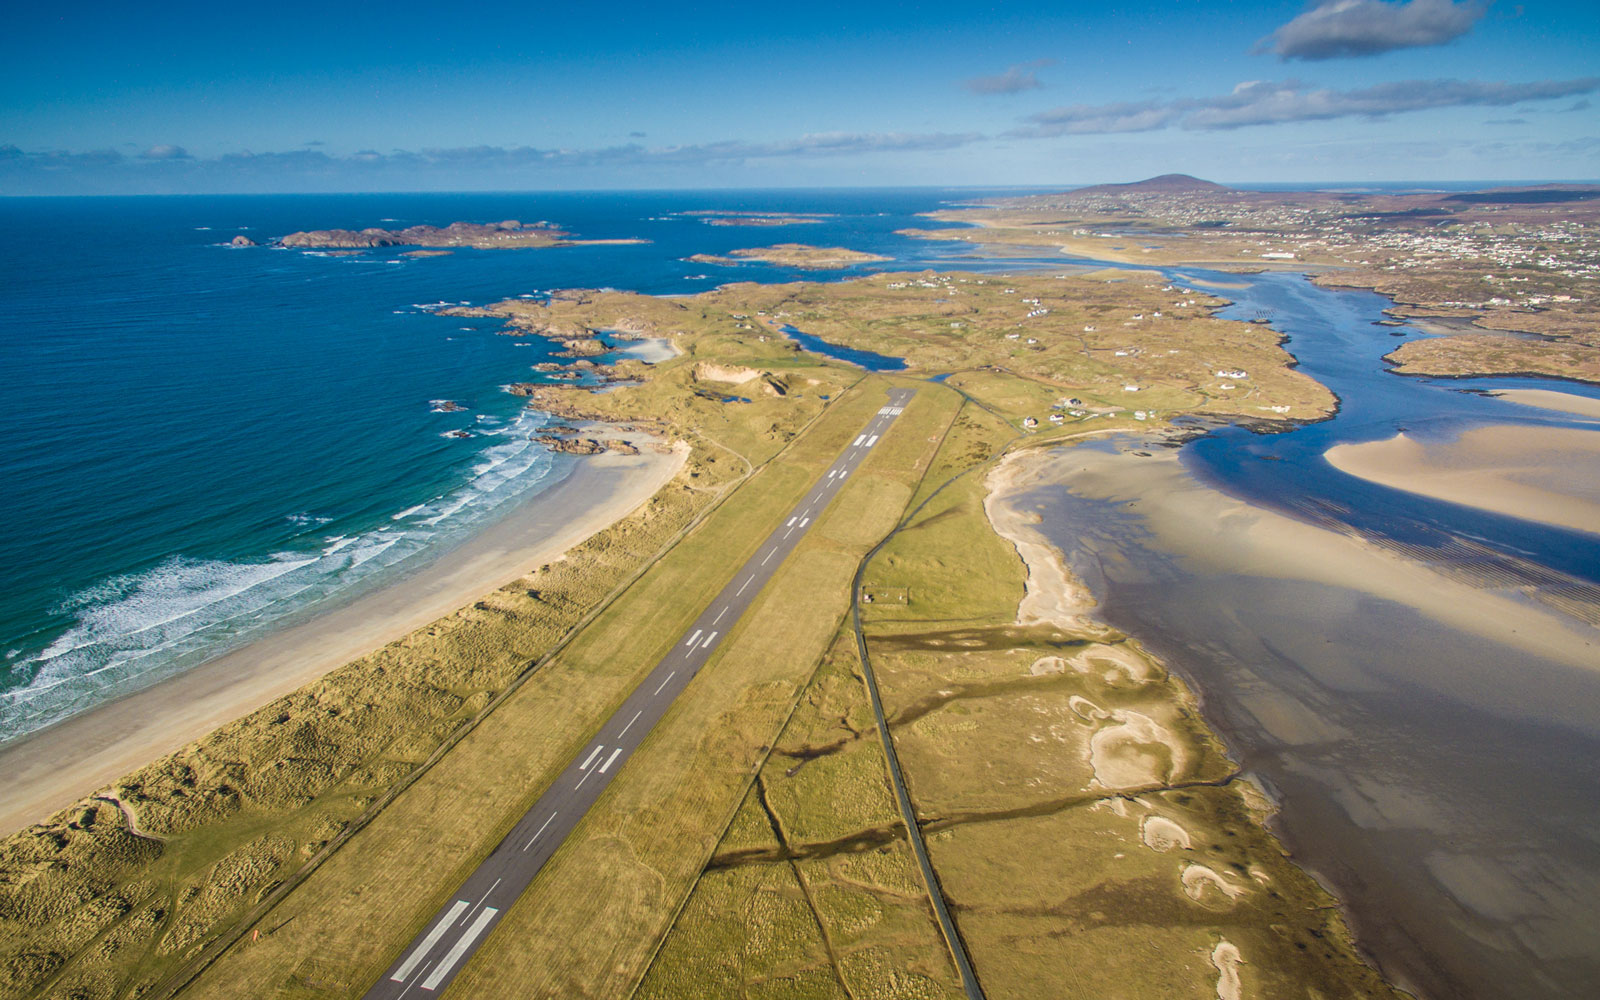 This Is the Most Scenic Airport Runway in the World